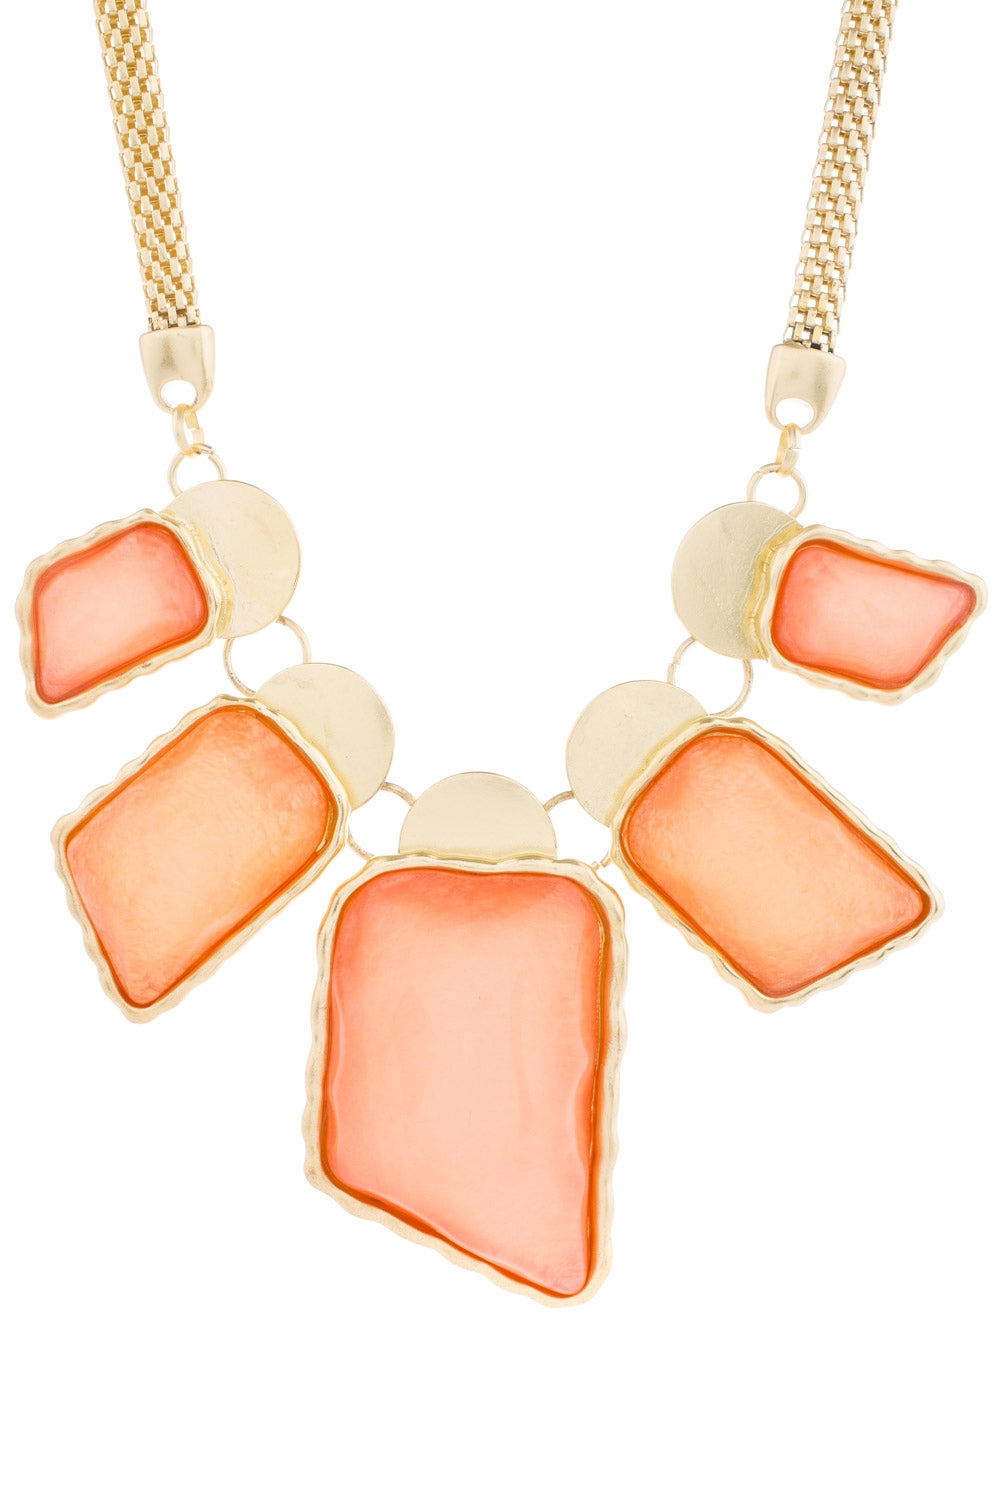 Type 3 Intense Peach Necklace